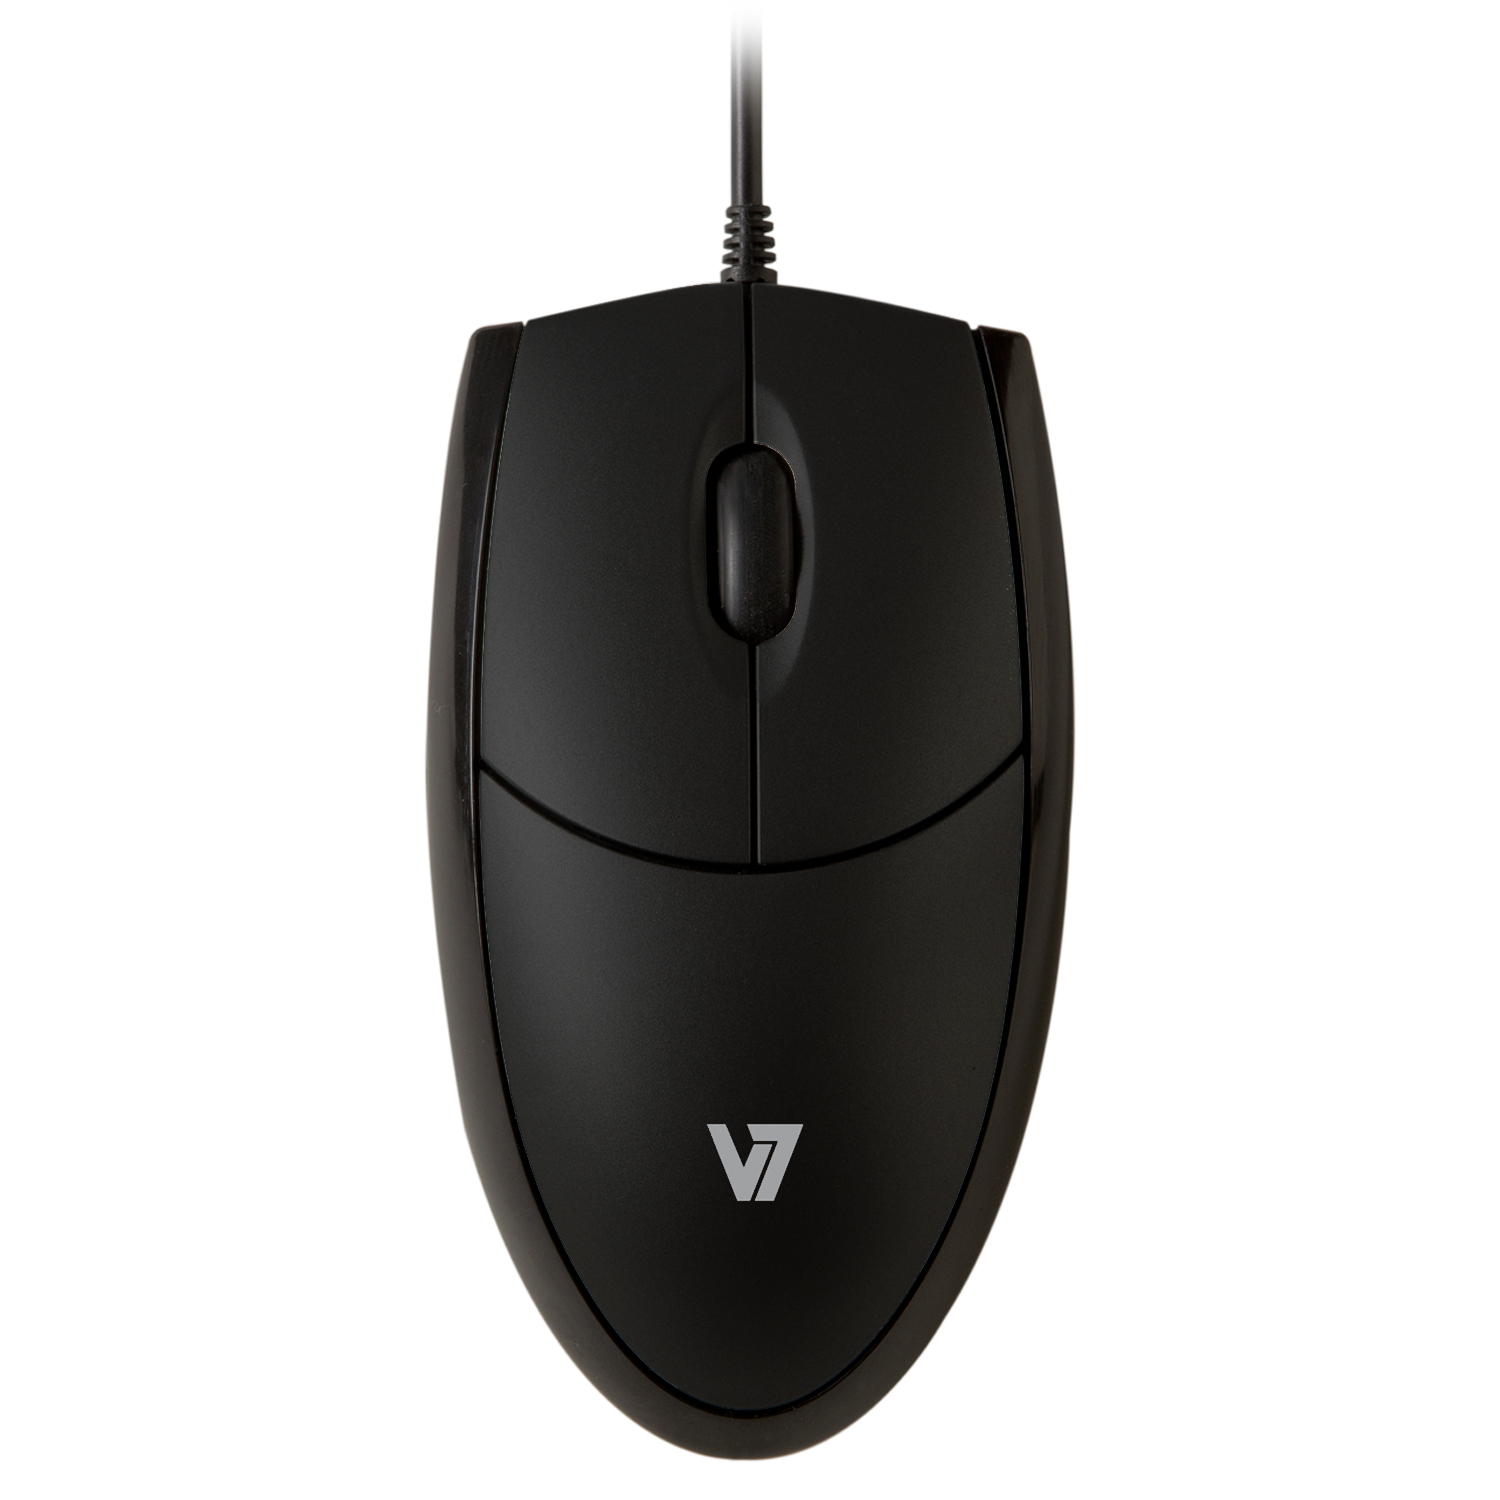 V7 Mouse ottico USB LED - negro